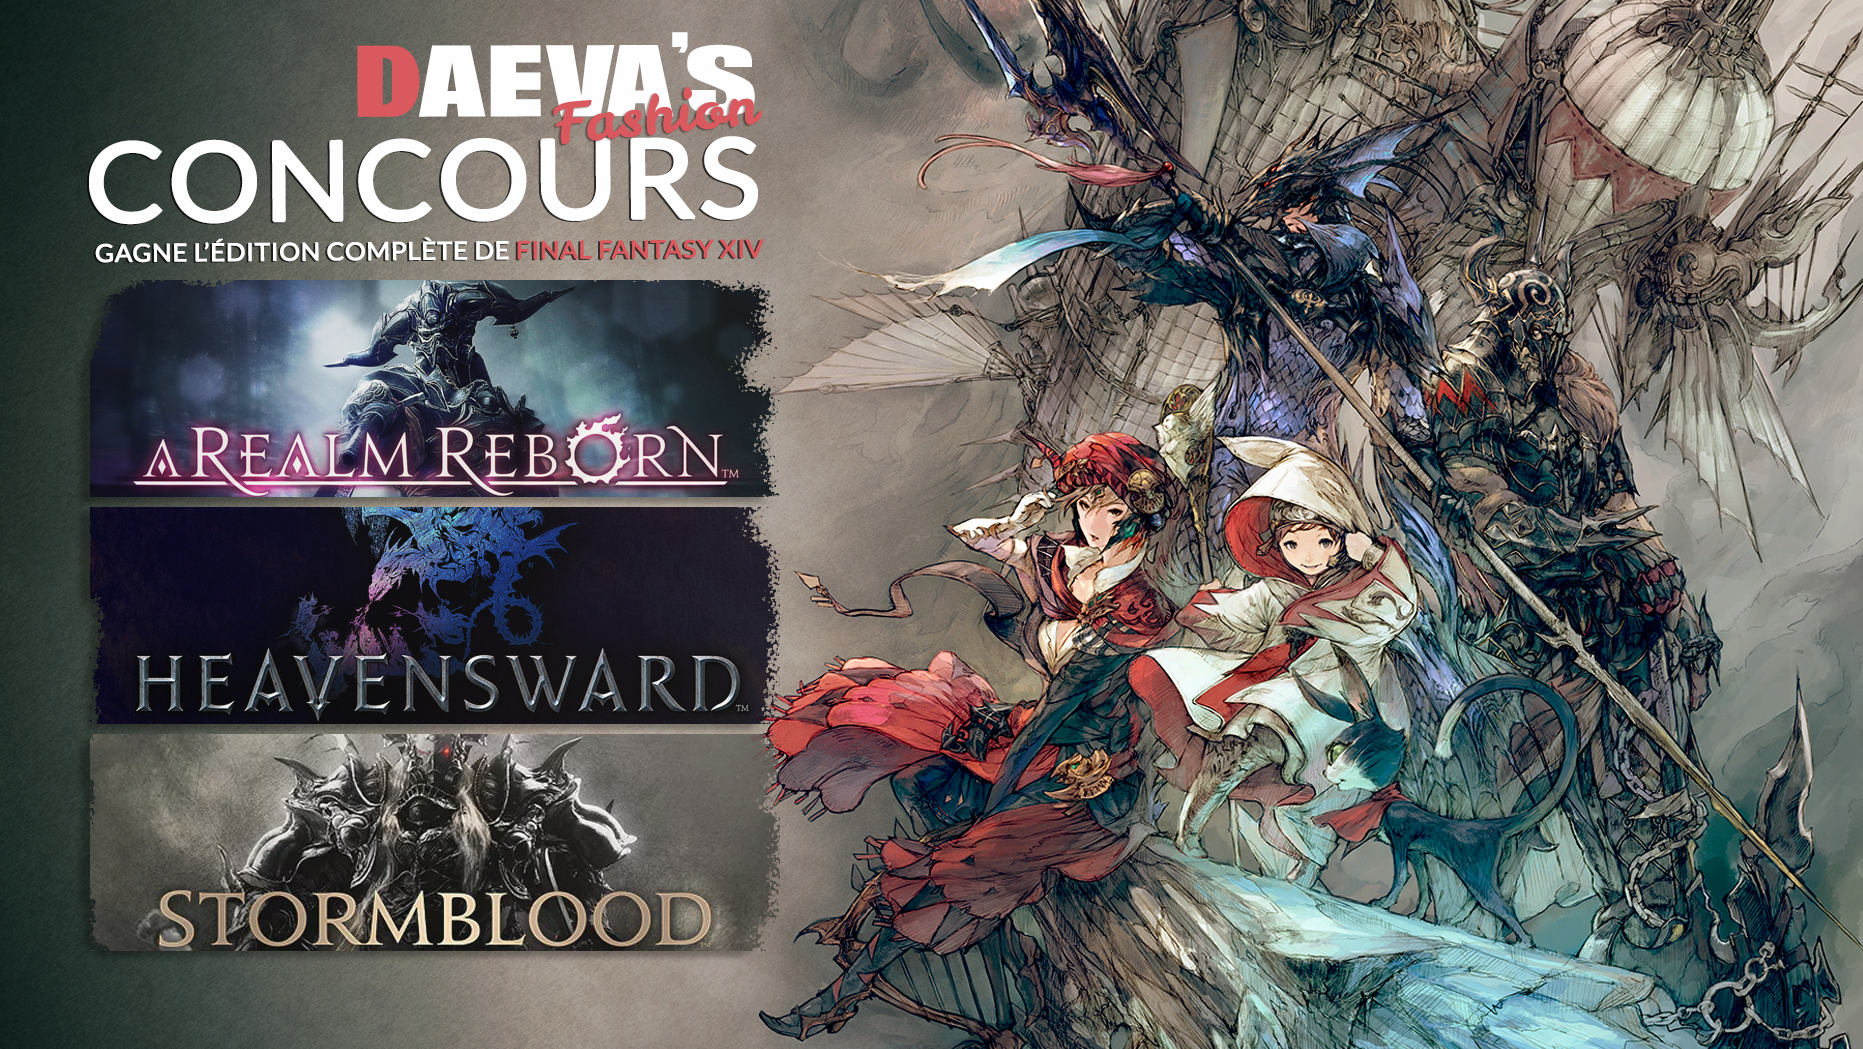 concours-daevas-fashion-final-fantasy-xiv-edition-complete